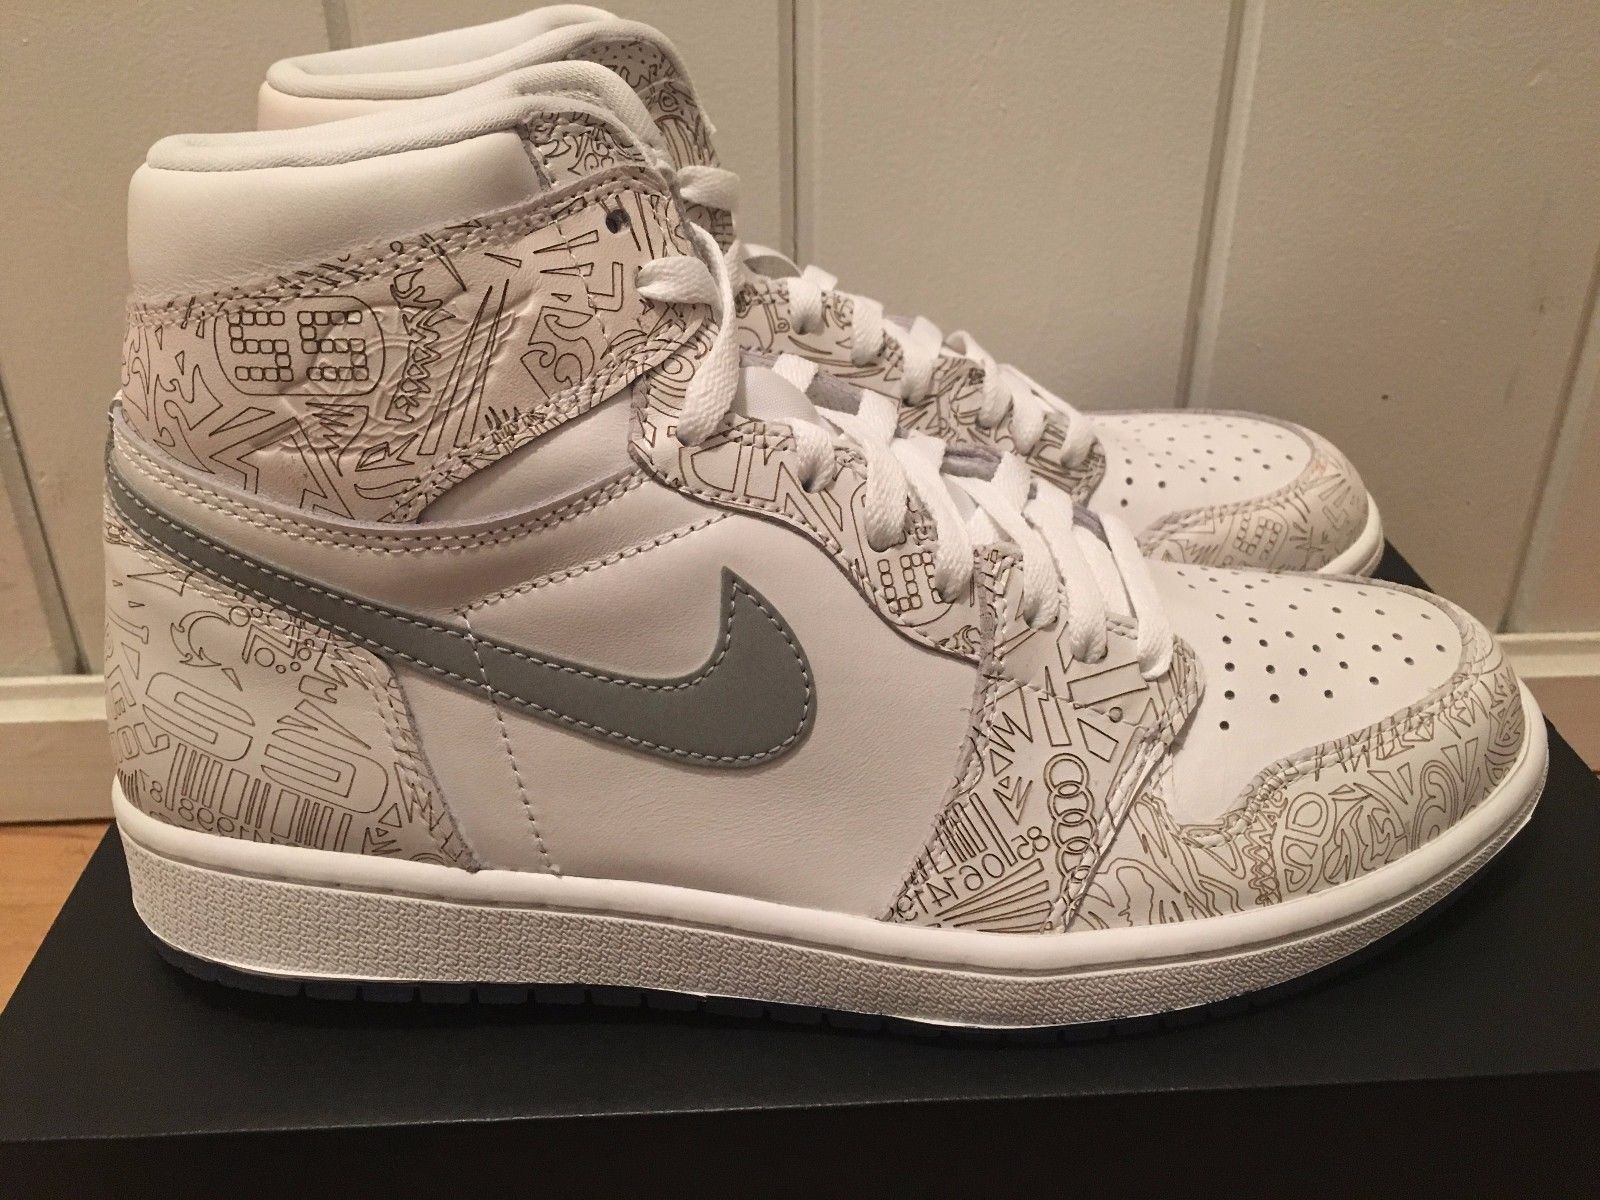 82c2e64d15a Air Jordan Retro 1 High OG Laser White Metallic Silver 705289 100 ...